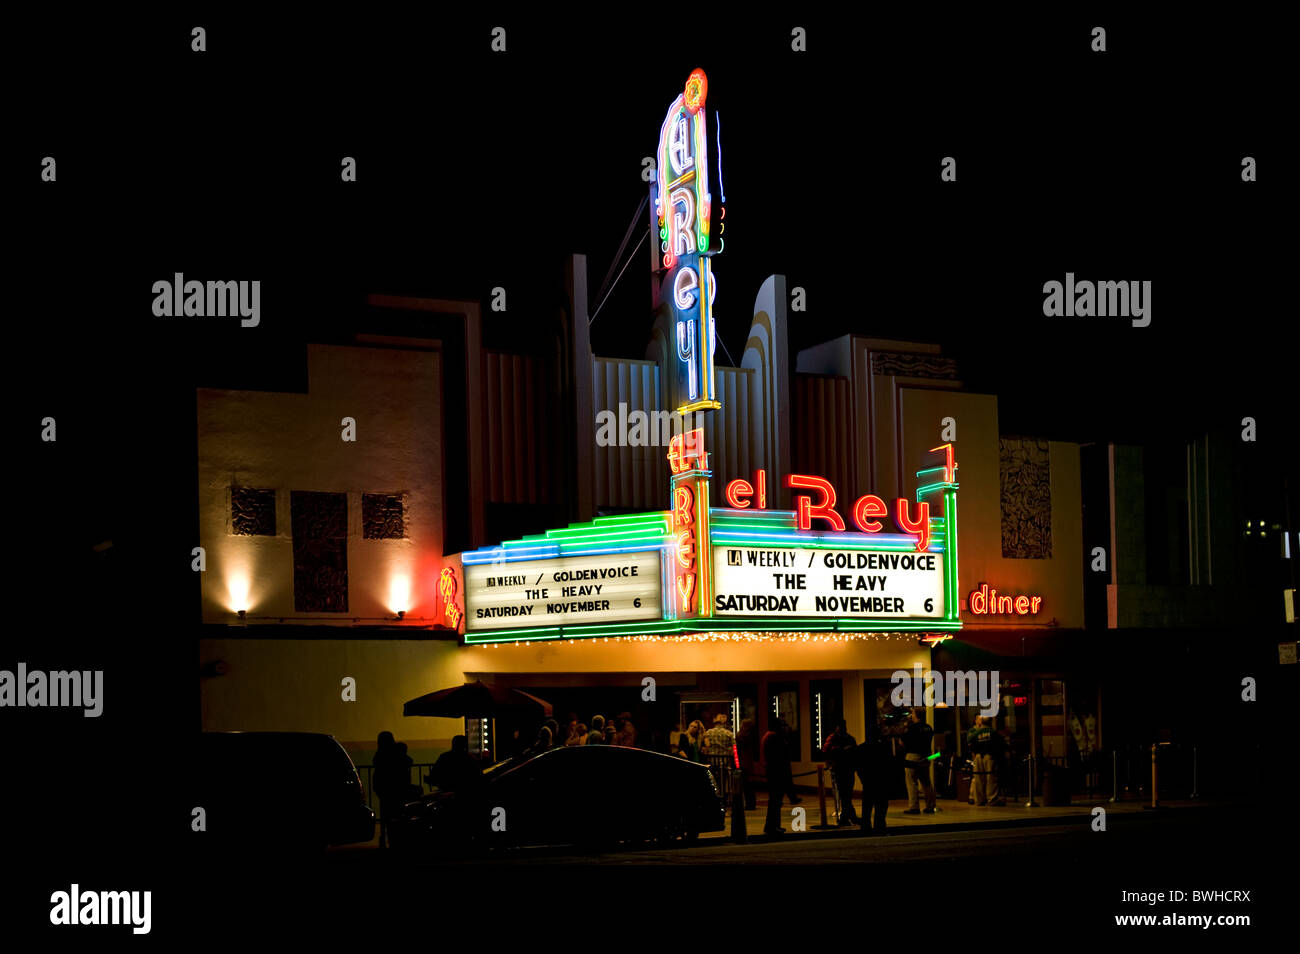 The 'El Rey' theater on Wilshire Boulevard, Los Angeles, California, USA (at NIGHT) - Stock Image